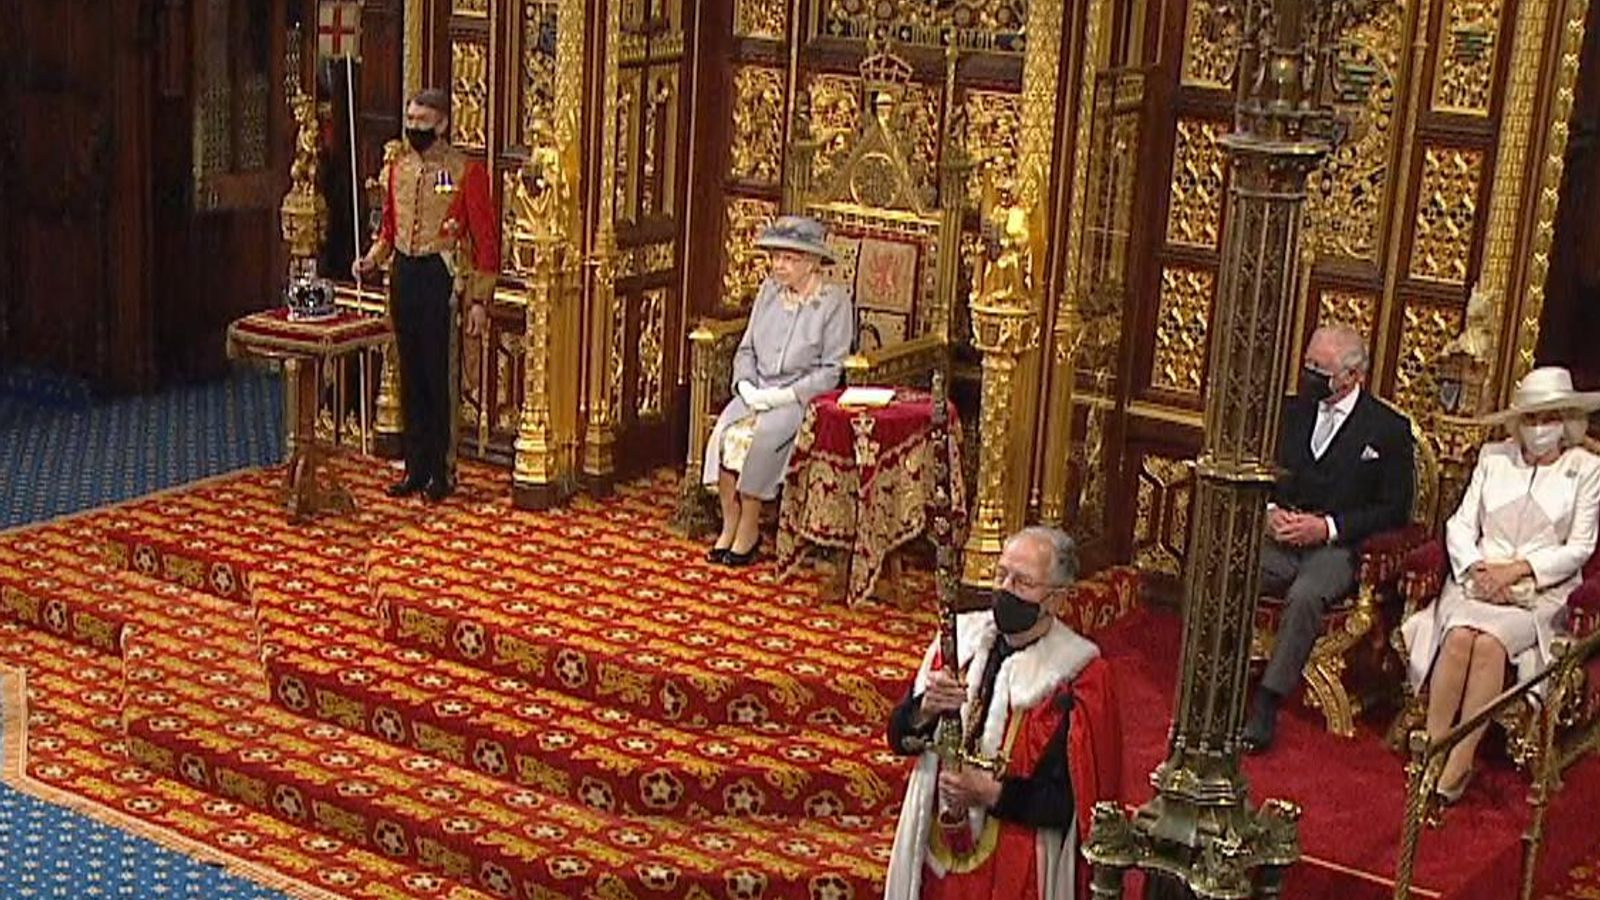 Queen's speech: 'Dressed down' monarch carries out first major engagement since death of husband Philip